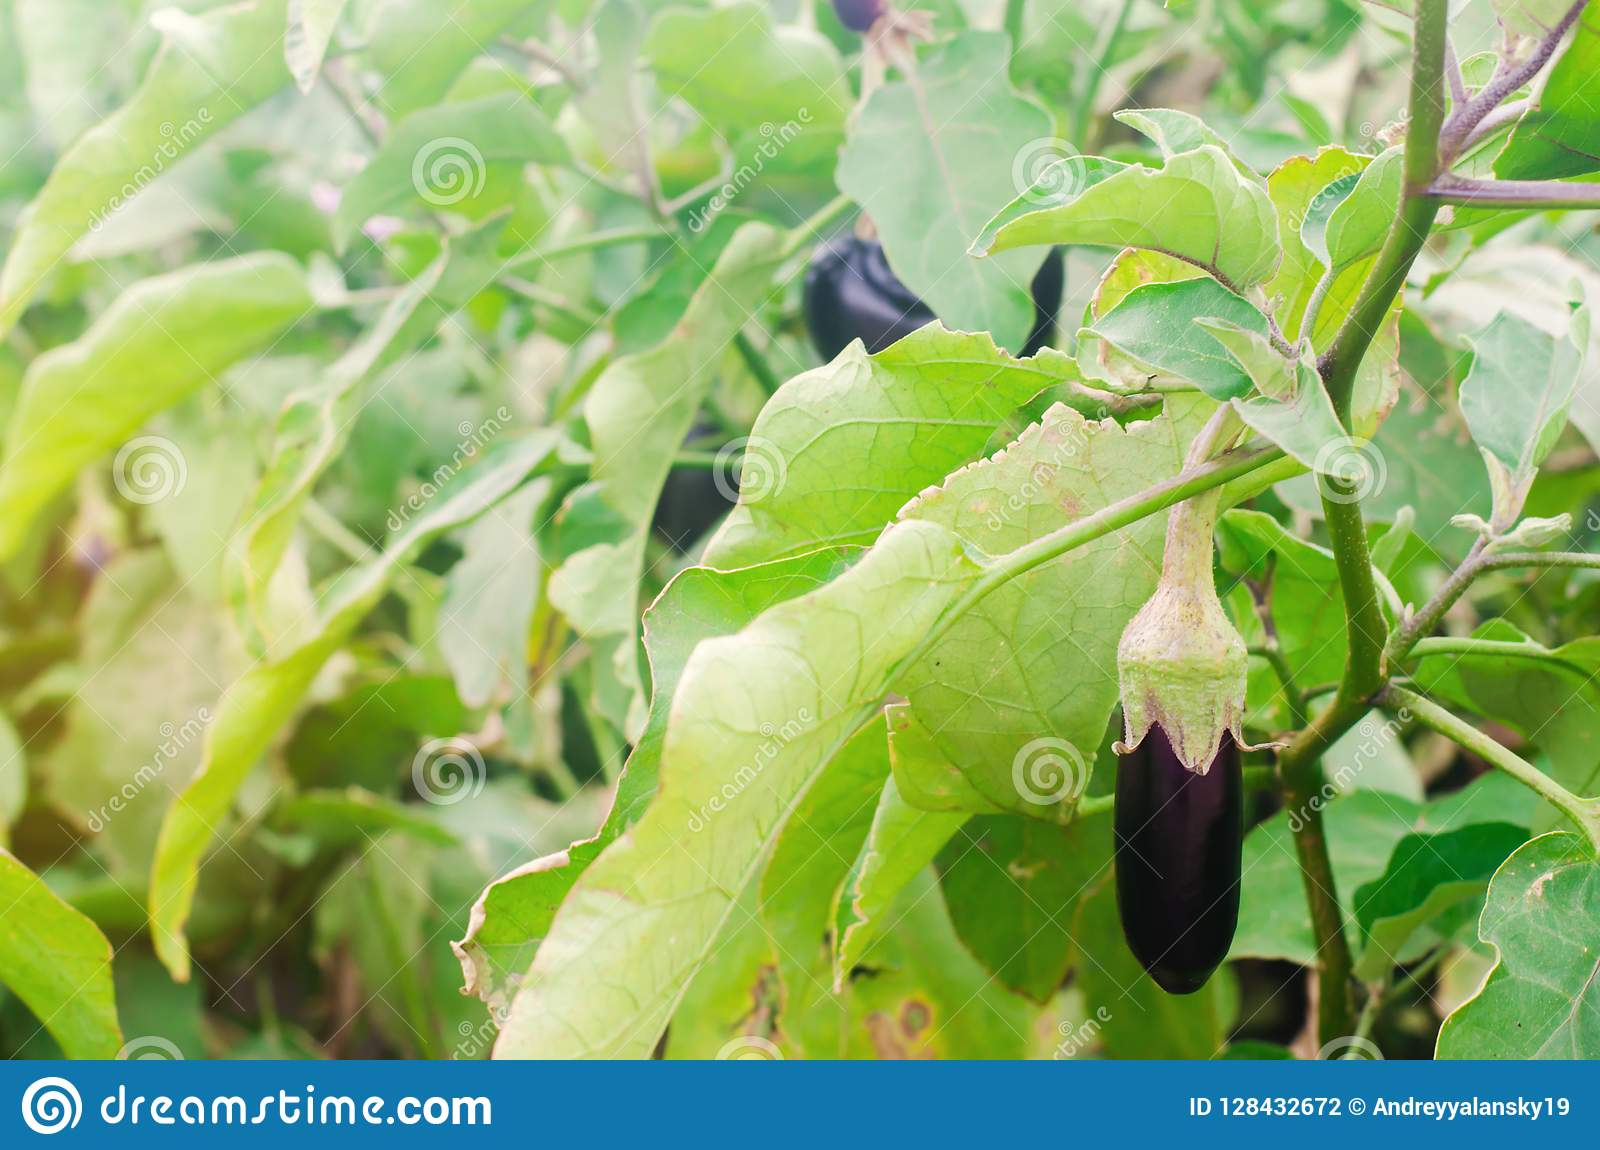 Eggplant harvest on the field. fresh organic vegetables. agriculture, farm. healthy food aubergine